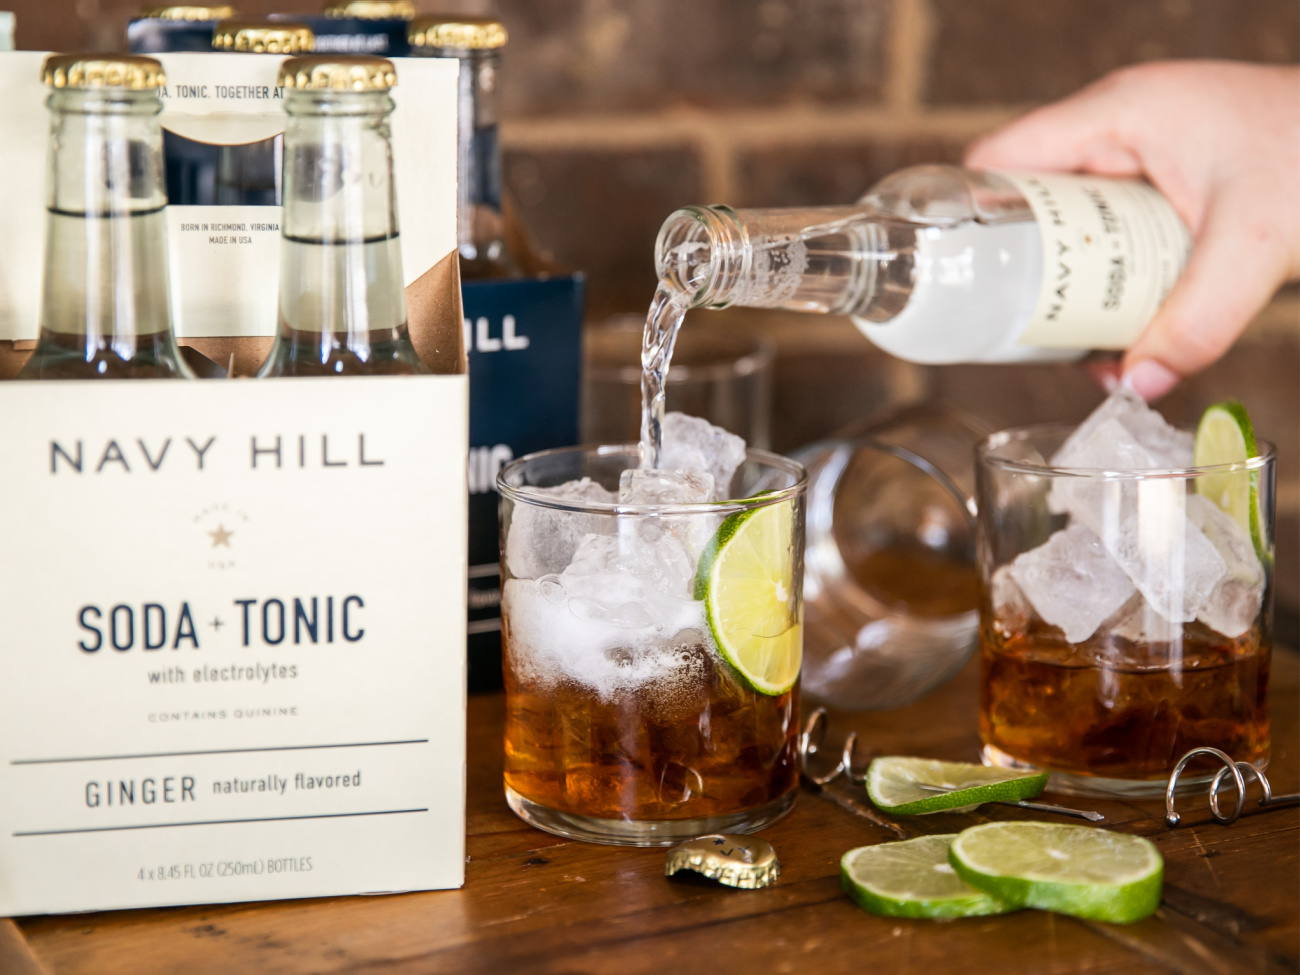 Huge Discount On Navy Hill Mixers At Publix – Save On A Delicious Soda + Tonic Blend! on I Heart Publix 1